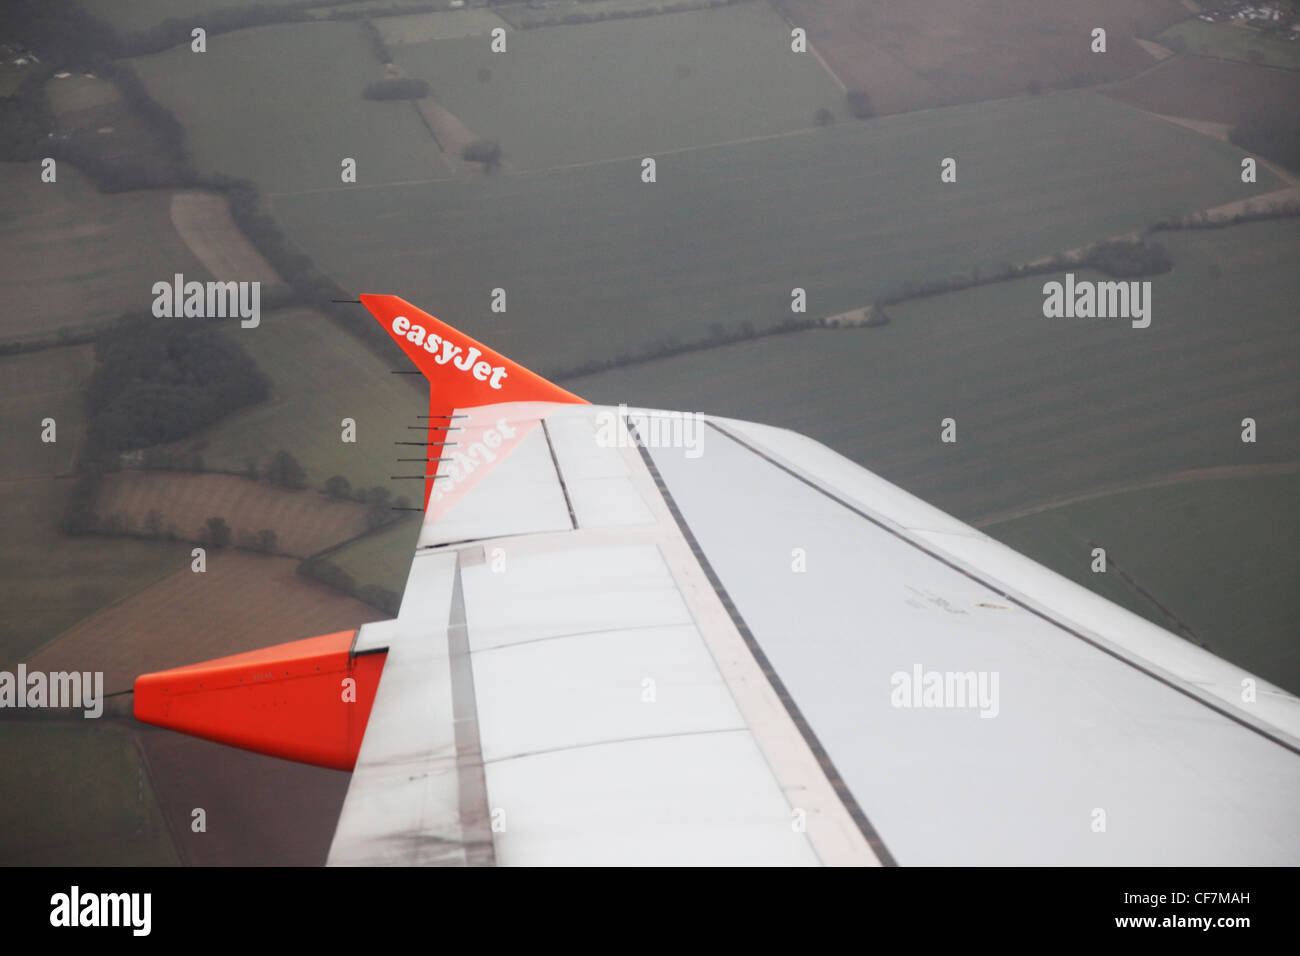 Easyjet aeroplane airplane wing view from inside - Stock Image